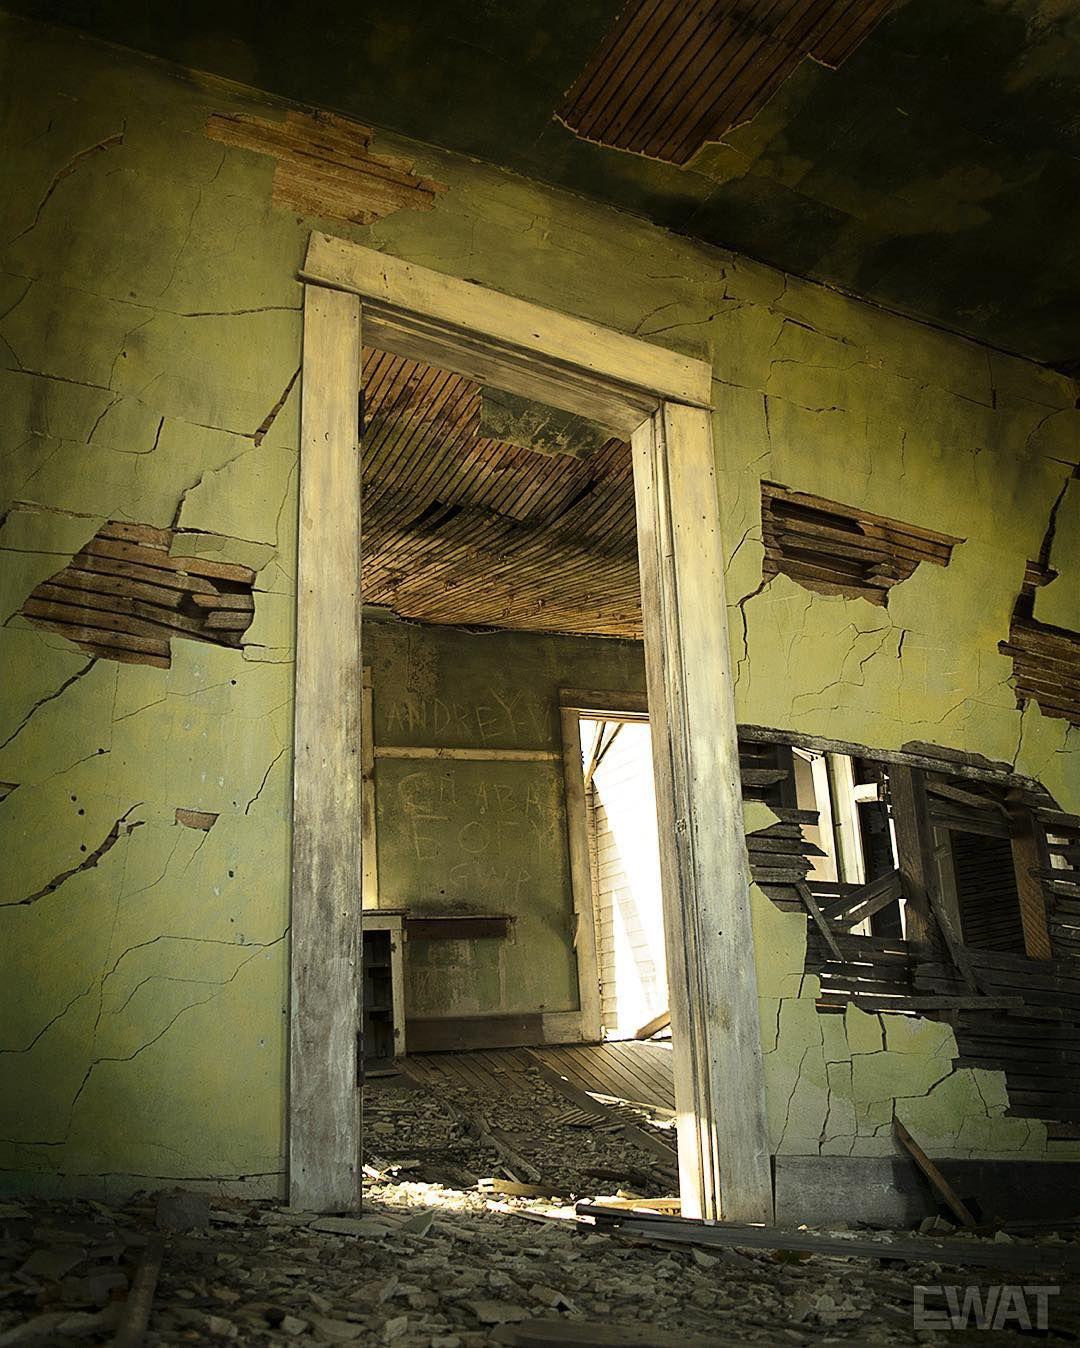 A Ballet Of Decay #abandoned #decay #derelict #brokenwalls